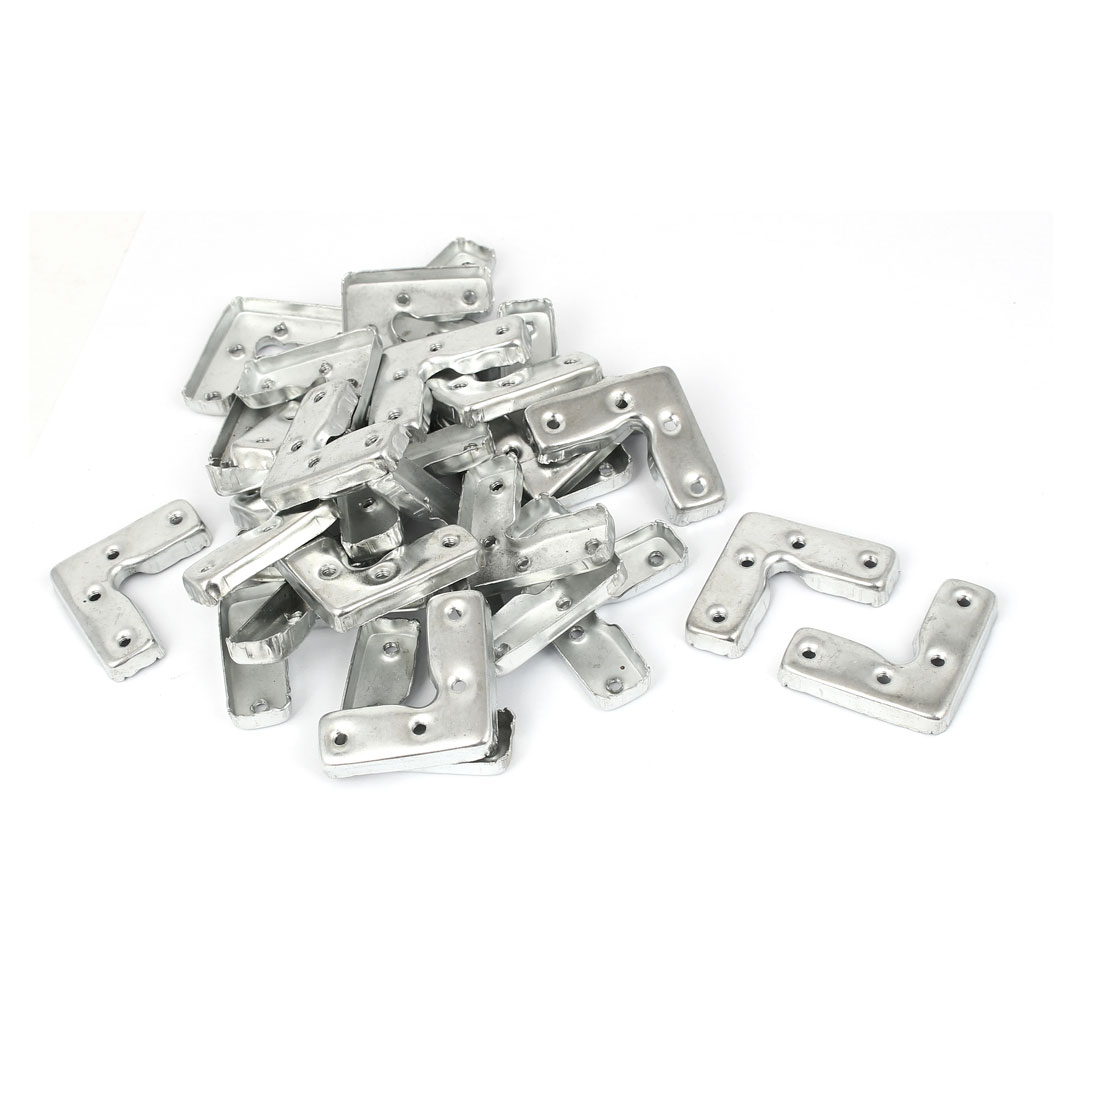 45mm x 45mm x 16mm Metal Corner Brace Joint Right Angle Bracket 30 Pcs